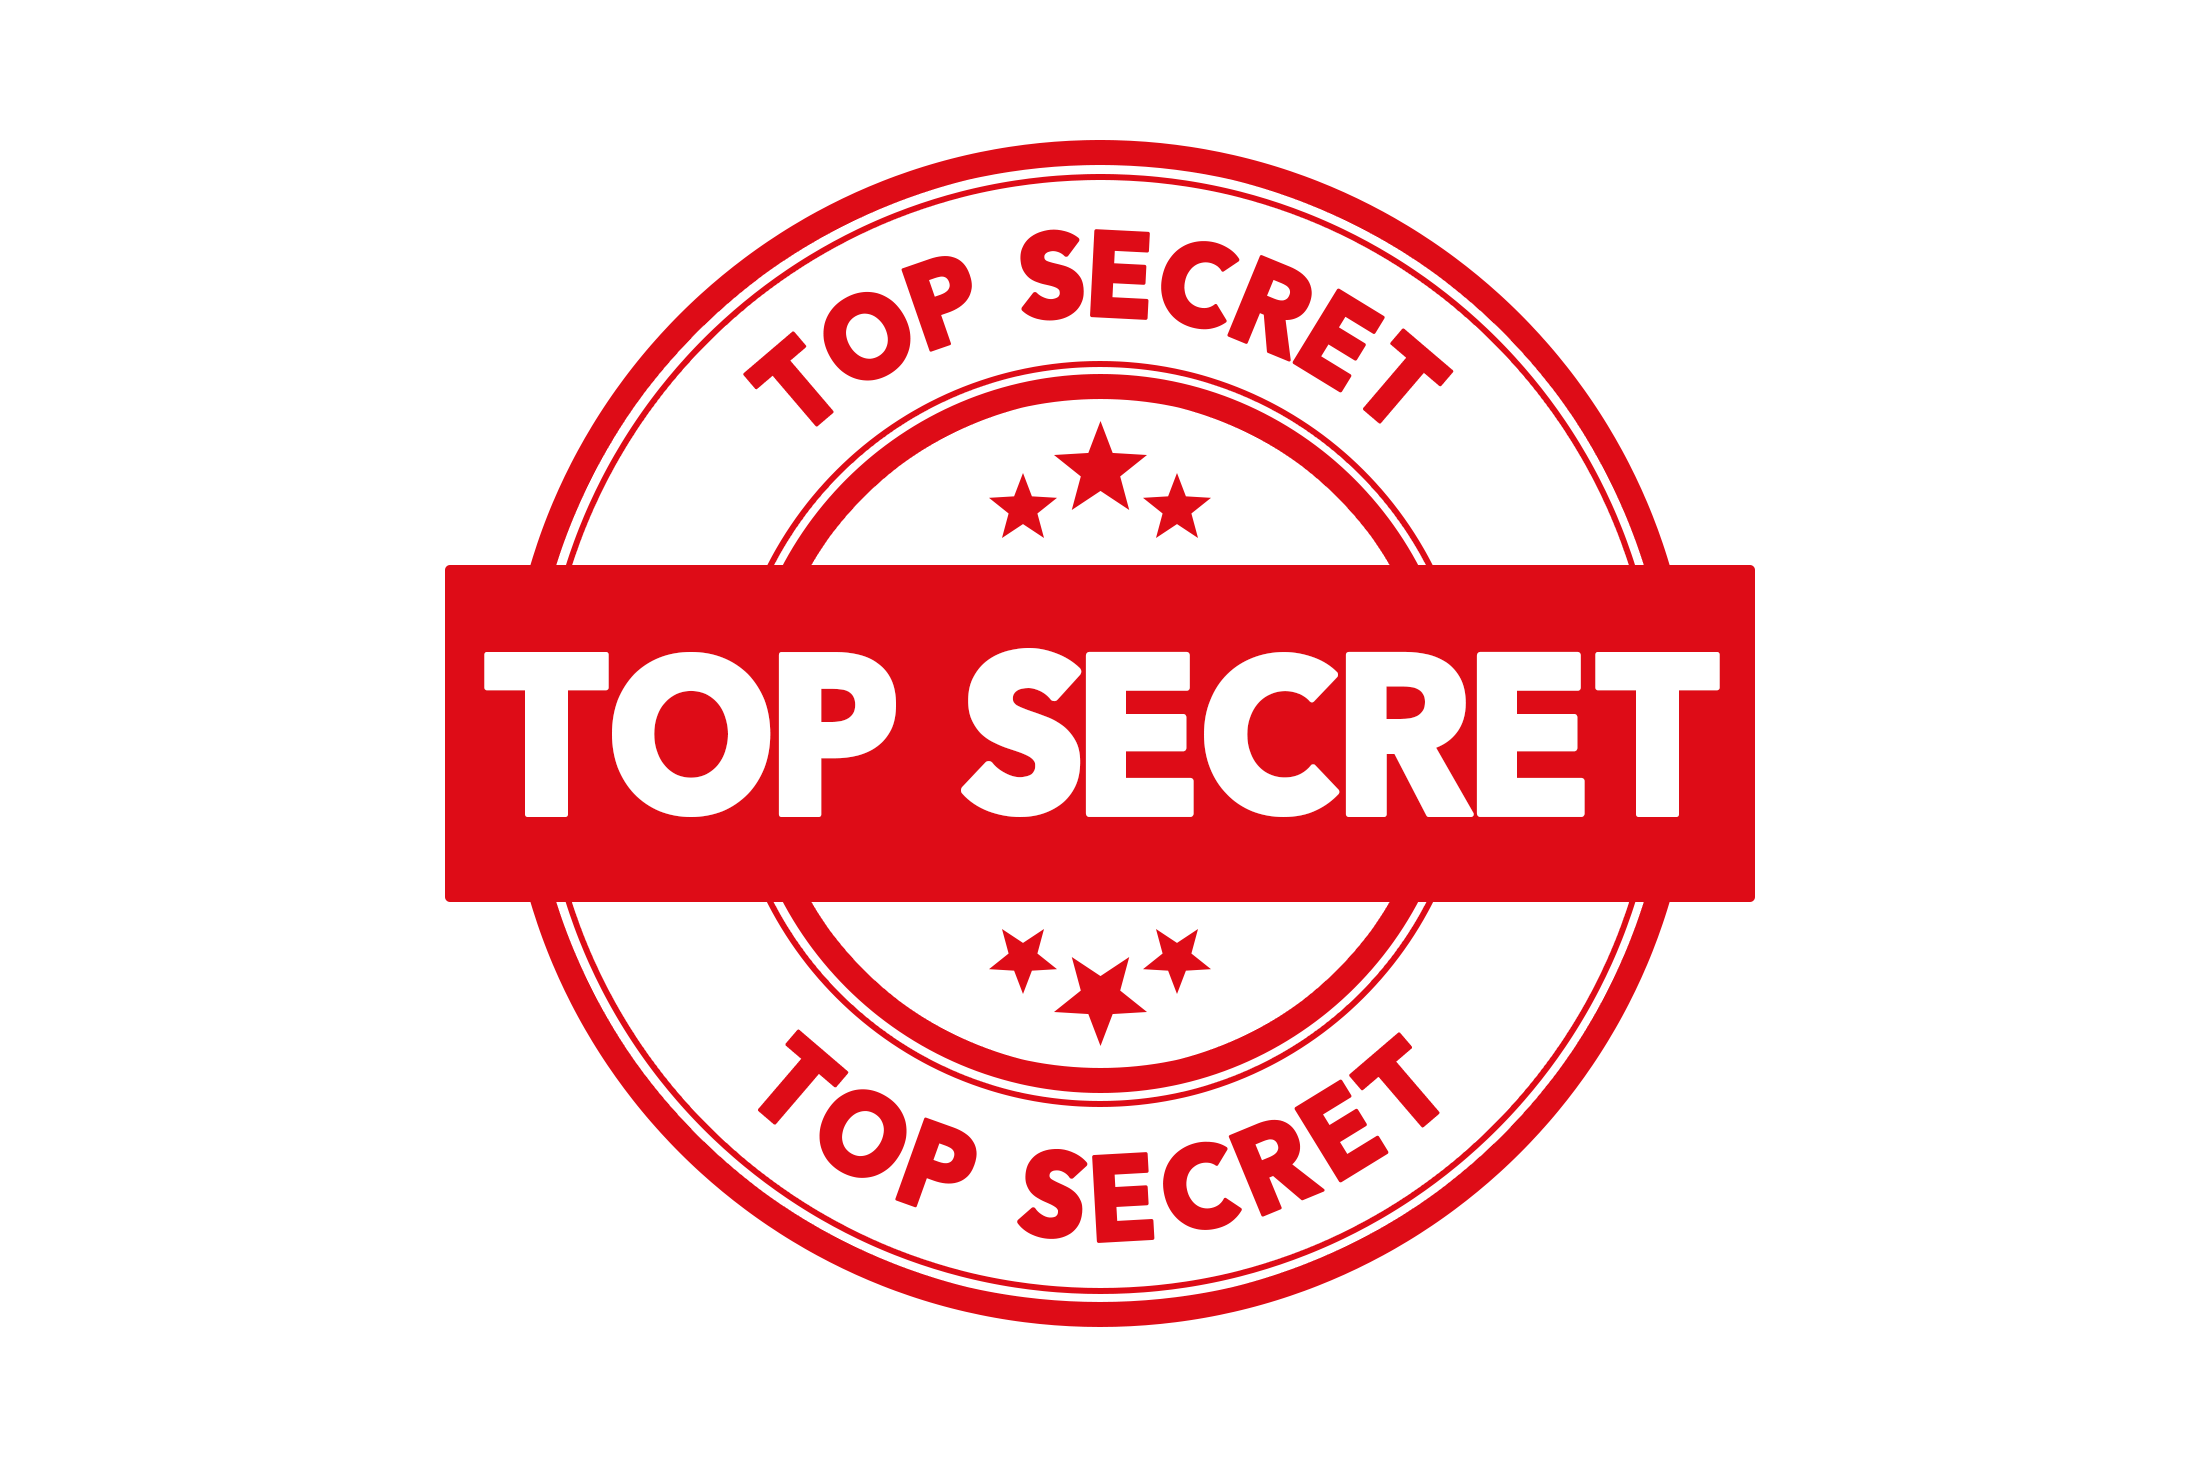 Round top secret stamp PSD